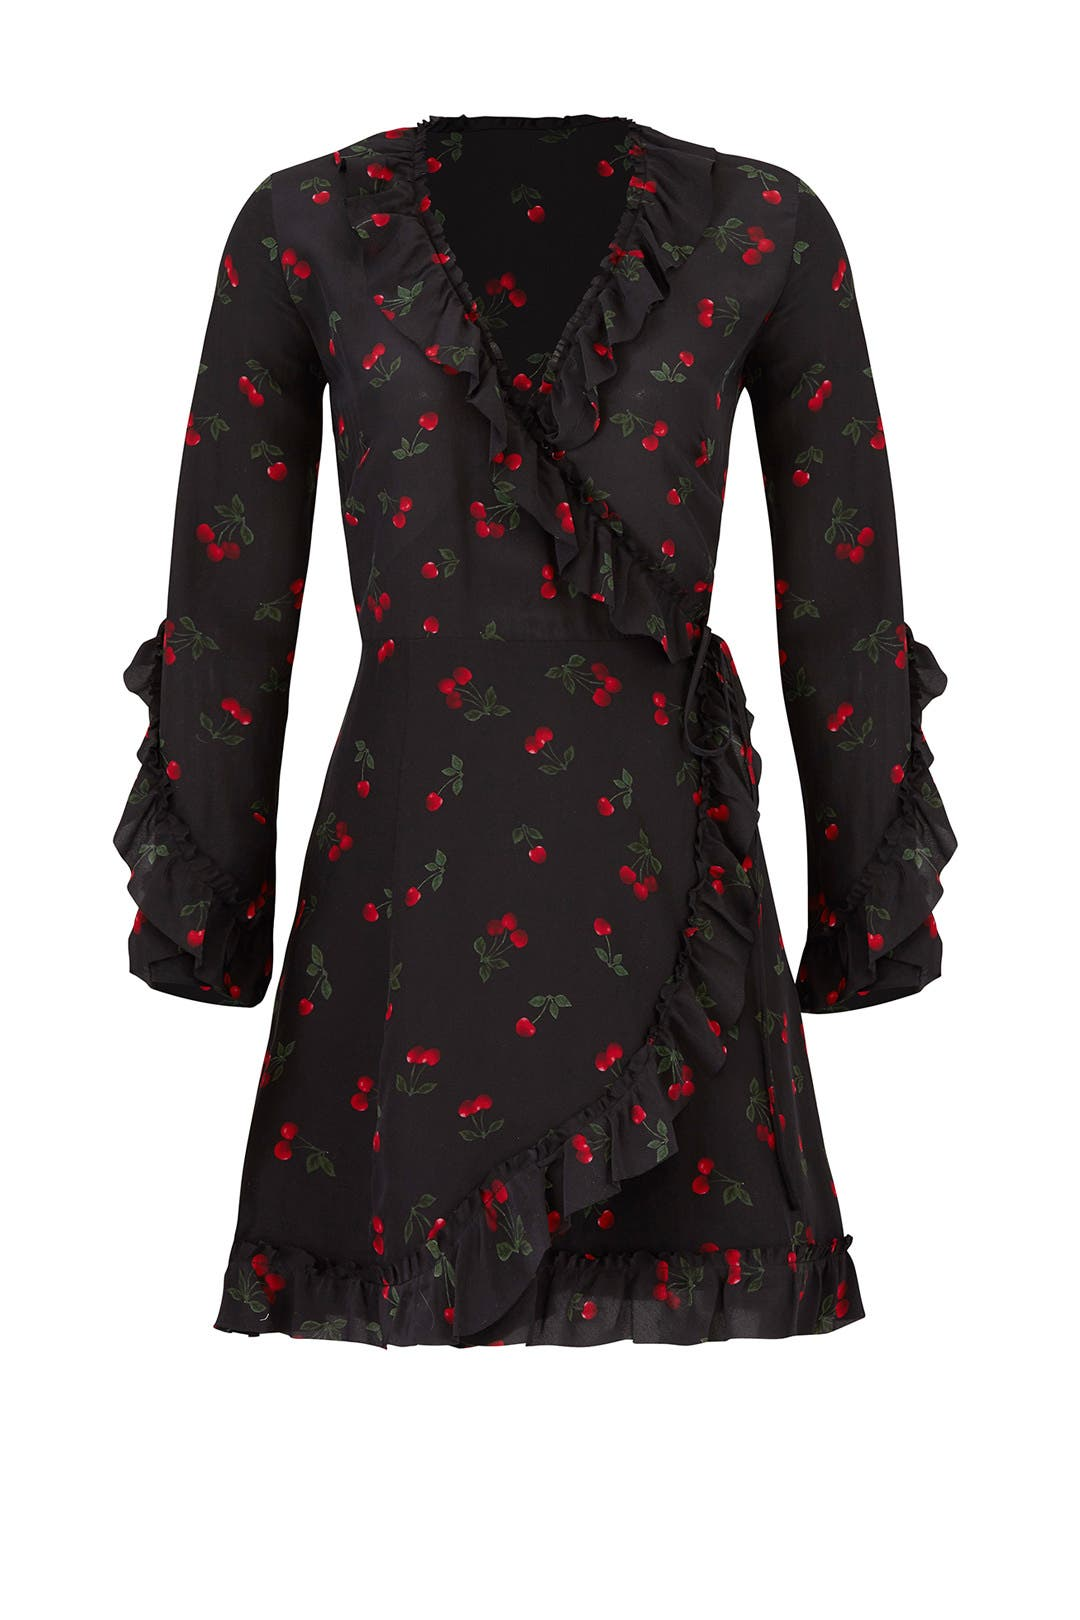 89b80204bc7 Cherry Love Wrap Dress by The Kooples for $149 | Rent the Runway